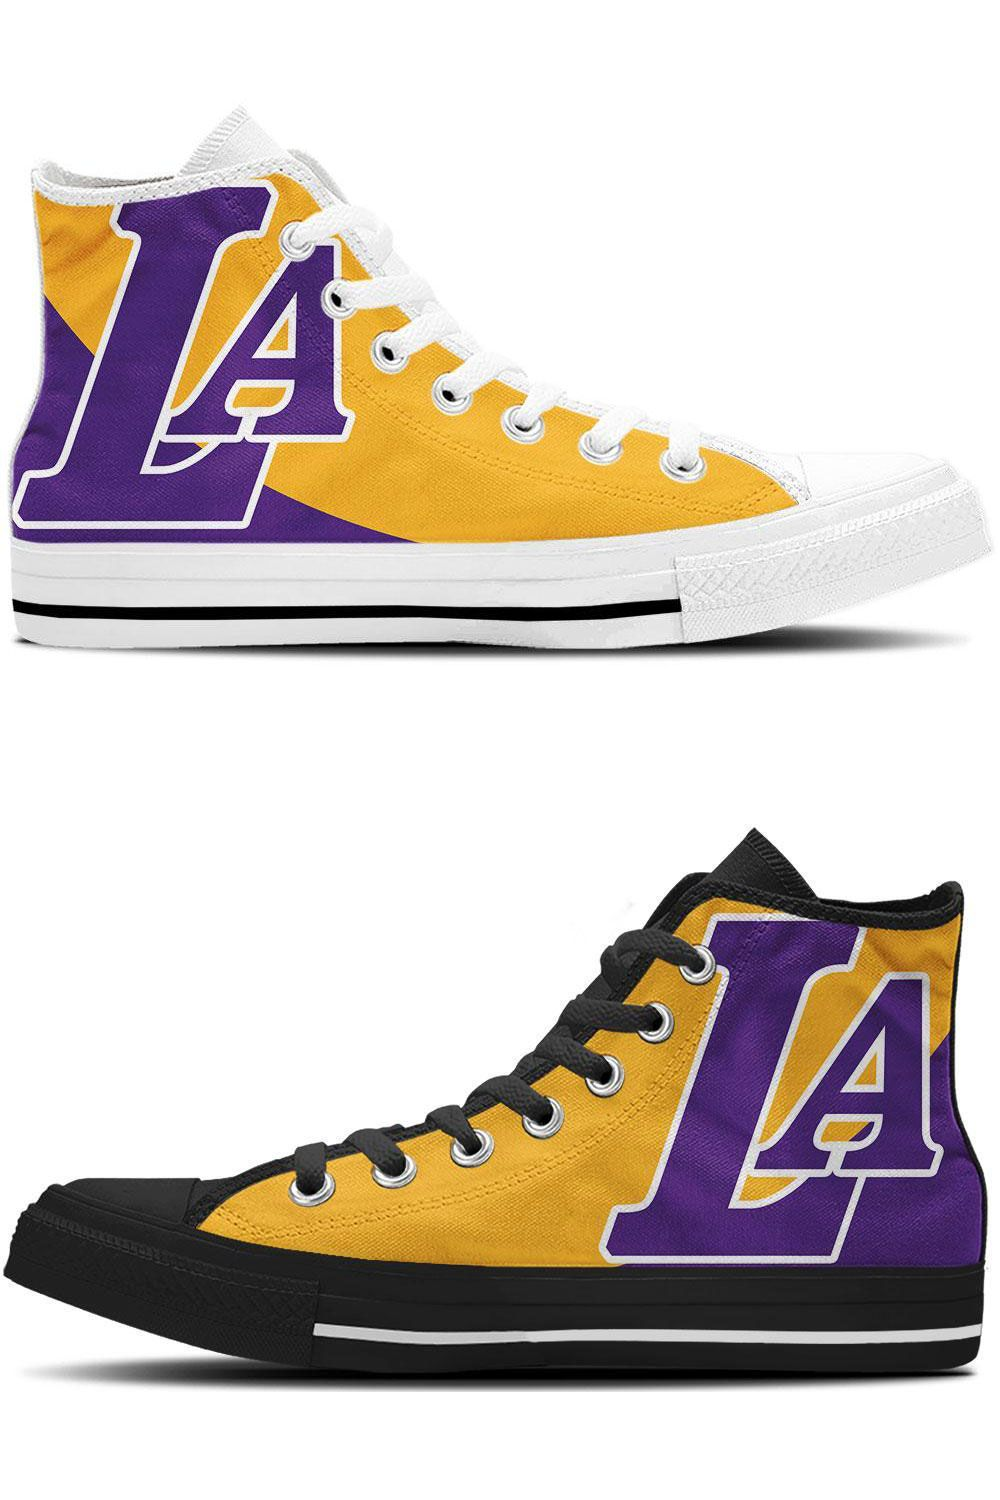 47d99b9db293 Lakers Shoes - High Tops Sneakers Calling all LA Lakers fans! Show your  team pride with these amazing high top sneakers in the iconic LA colors.